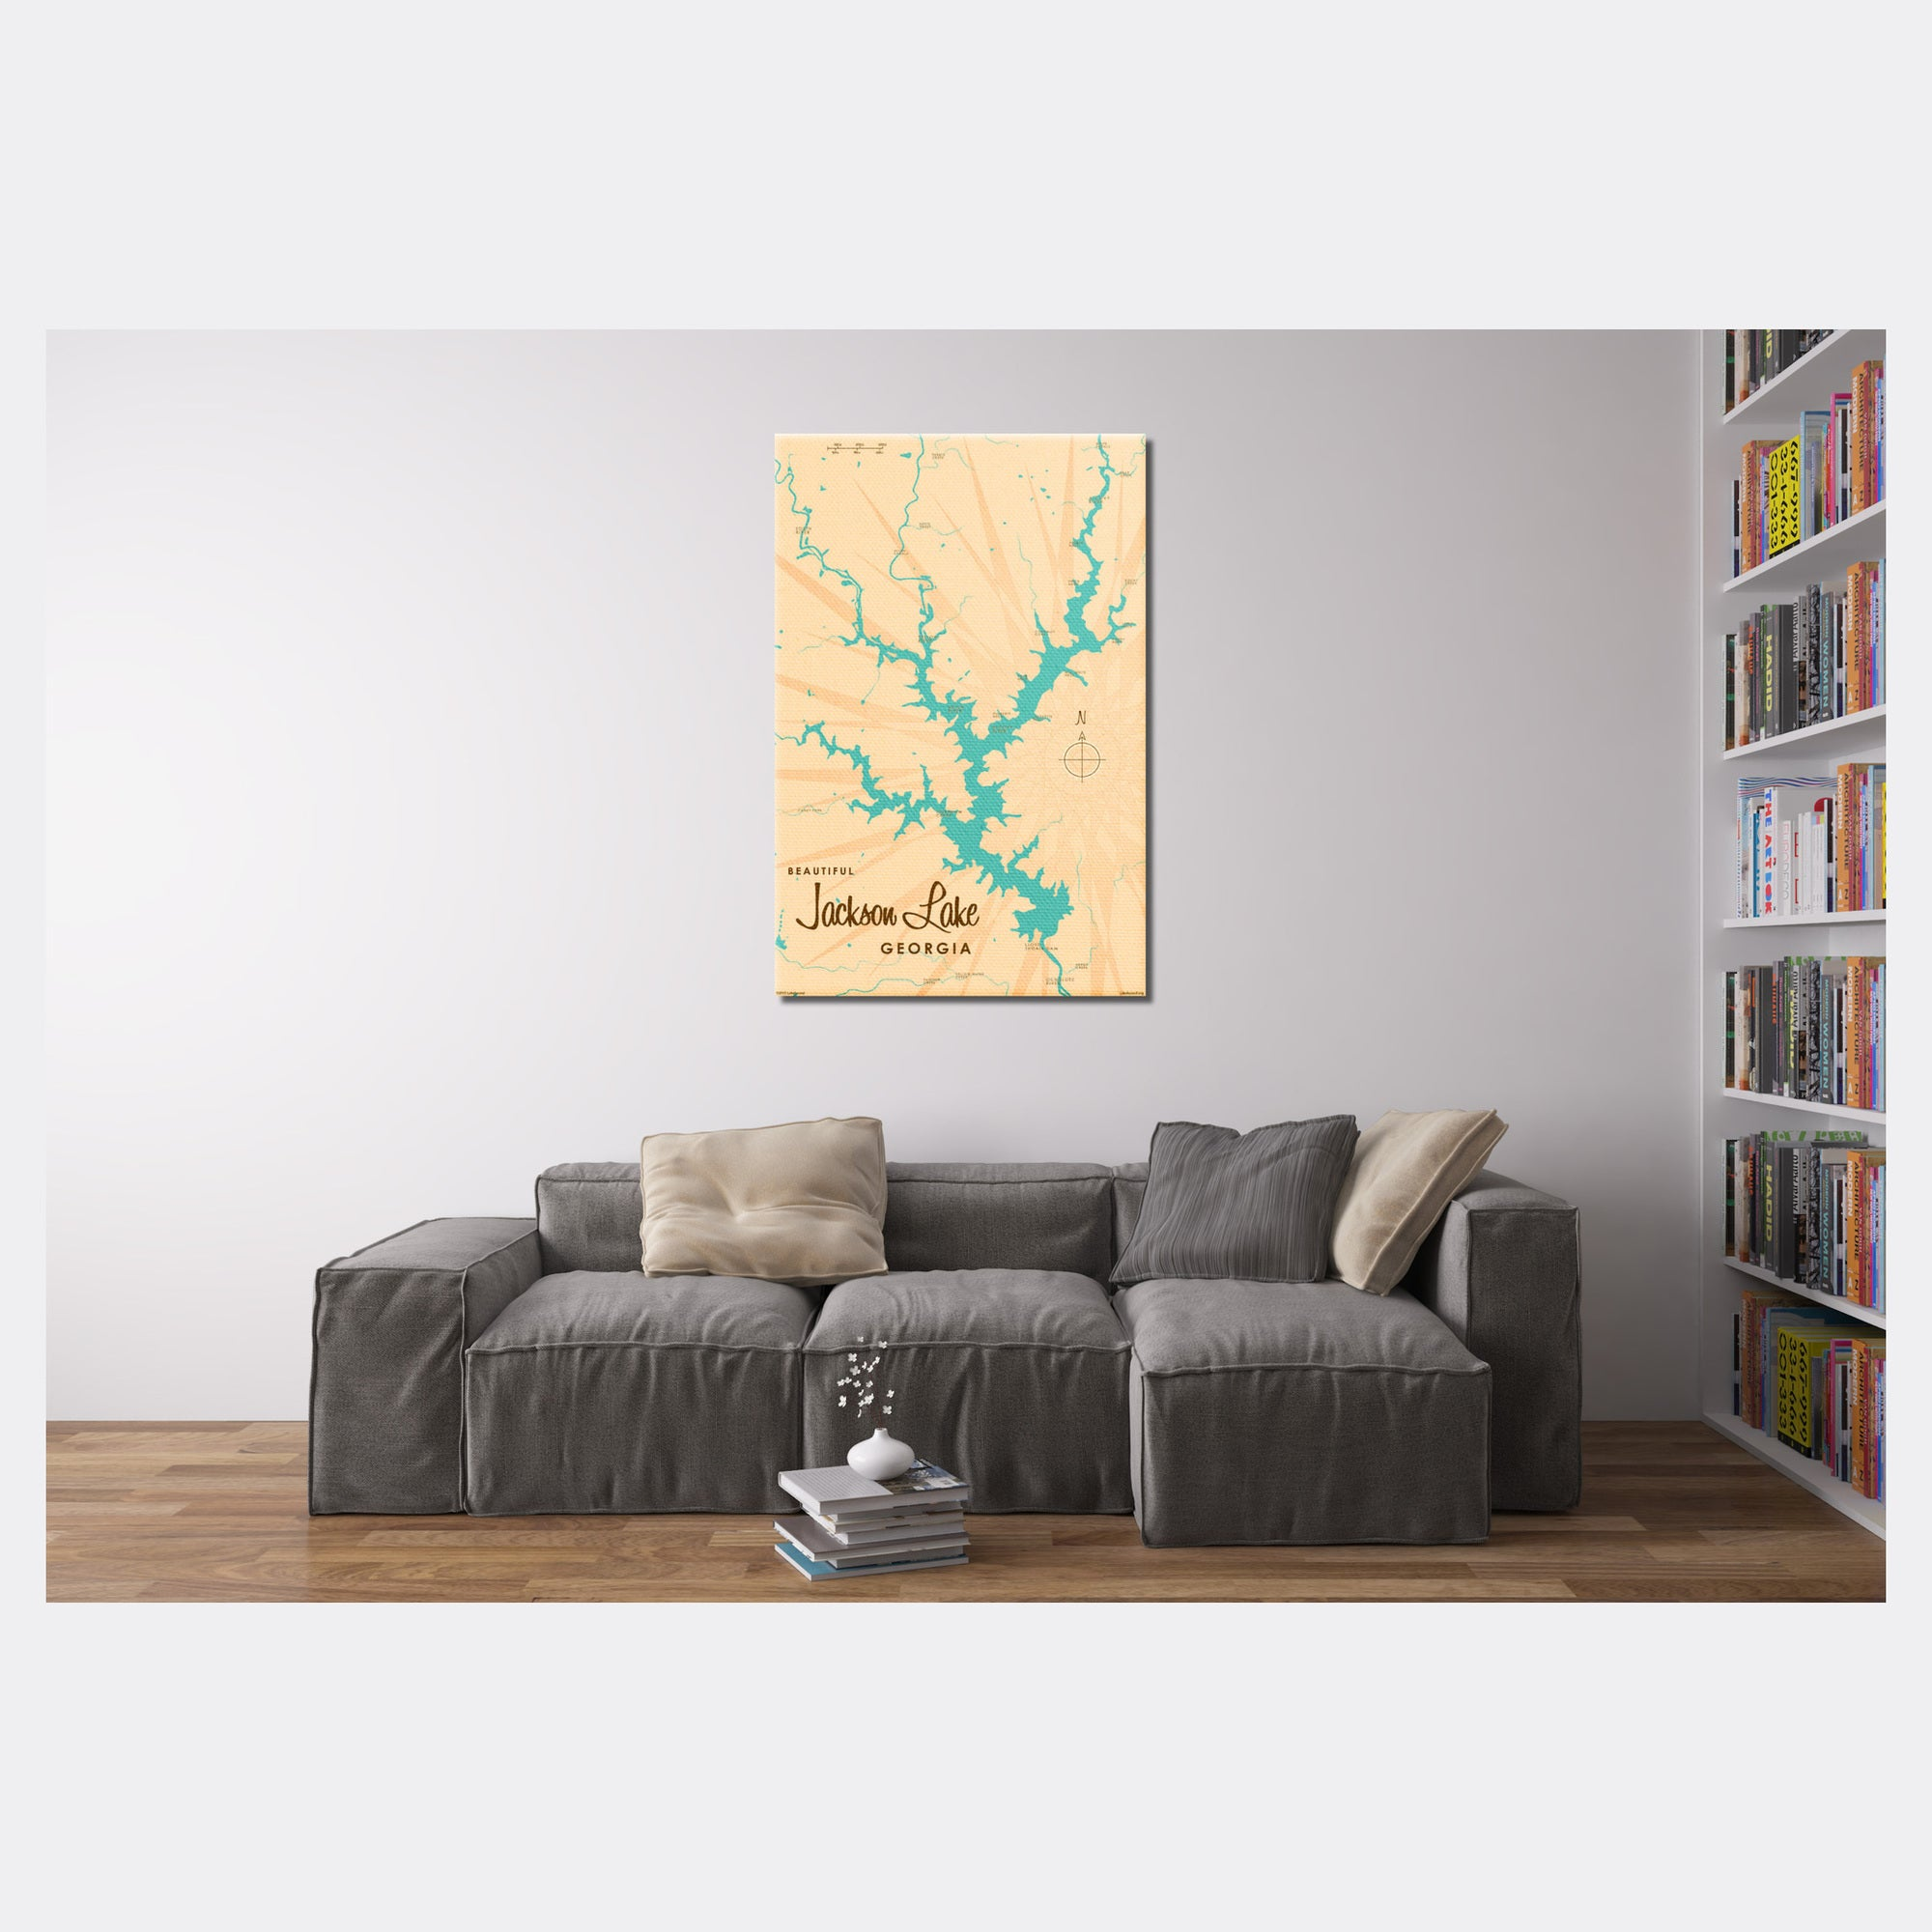 Jackson Lake Georgia, Canvas Print